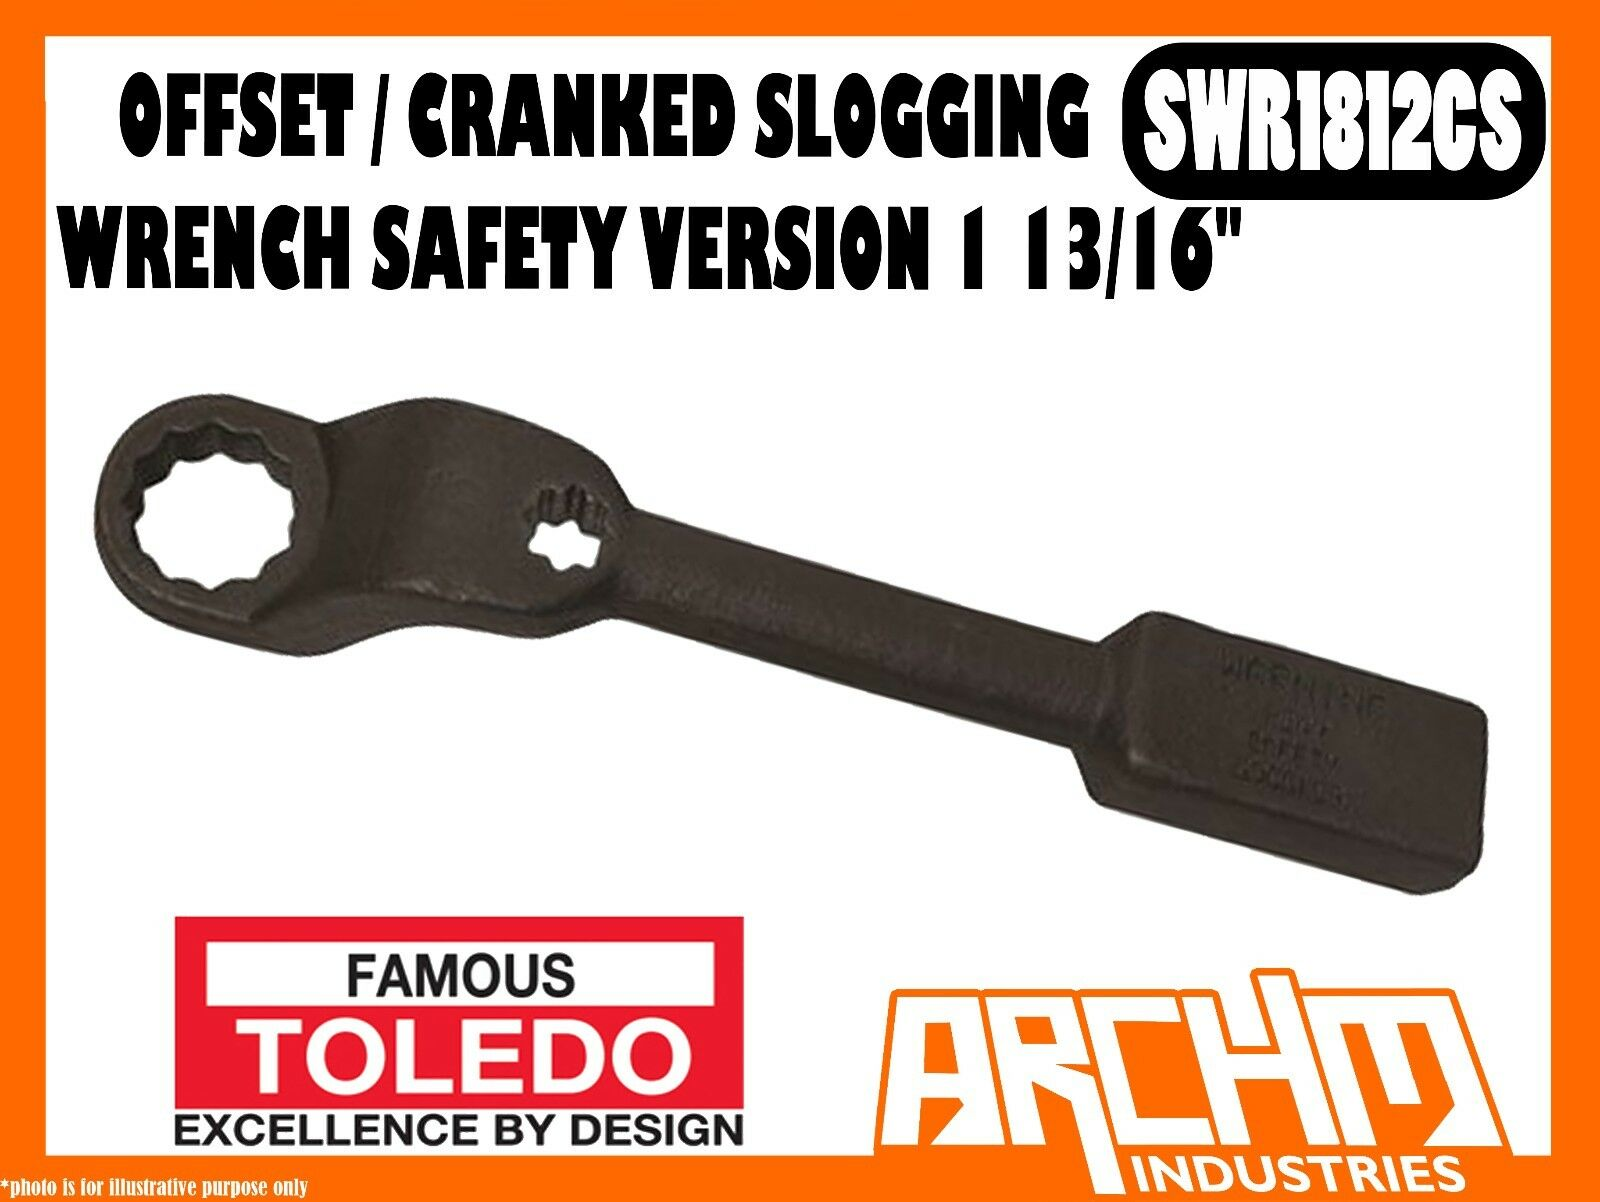 TOLEDO SWR1812CS OFFSET CRANKED SLOGGING WRENCH SAFETY VERSION 1 13 16  IMPERIAL